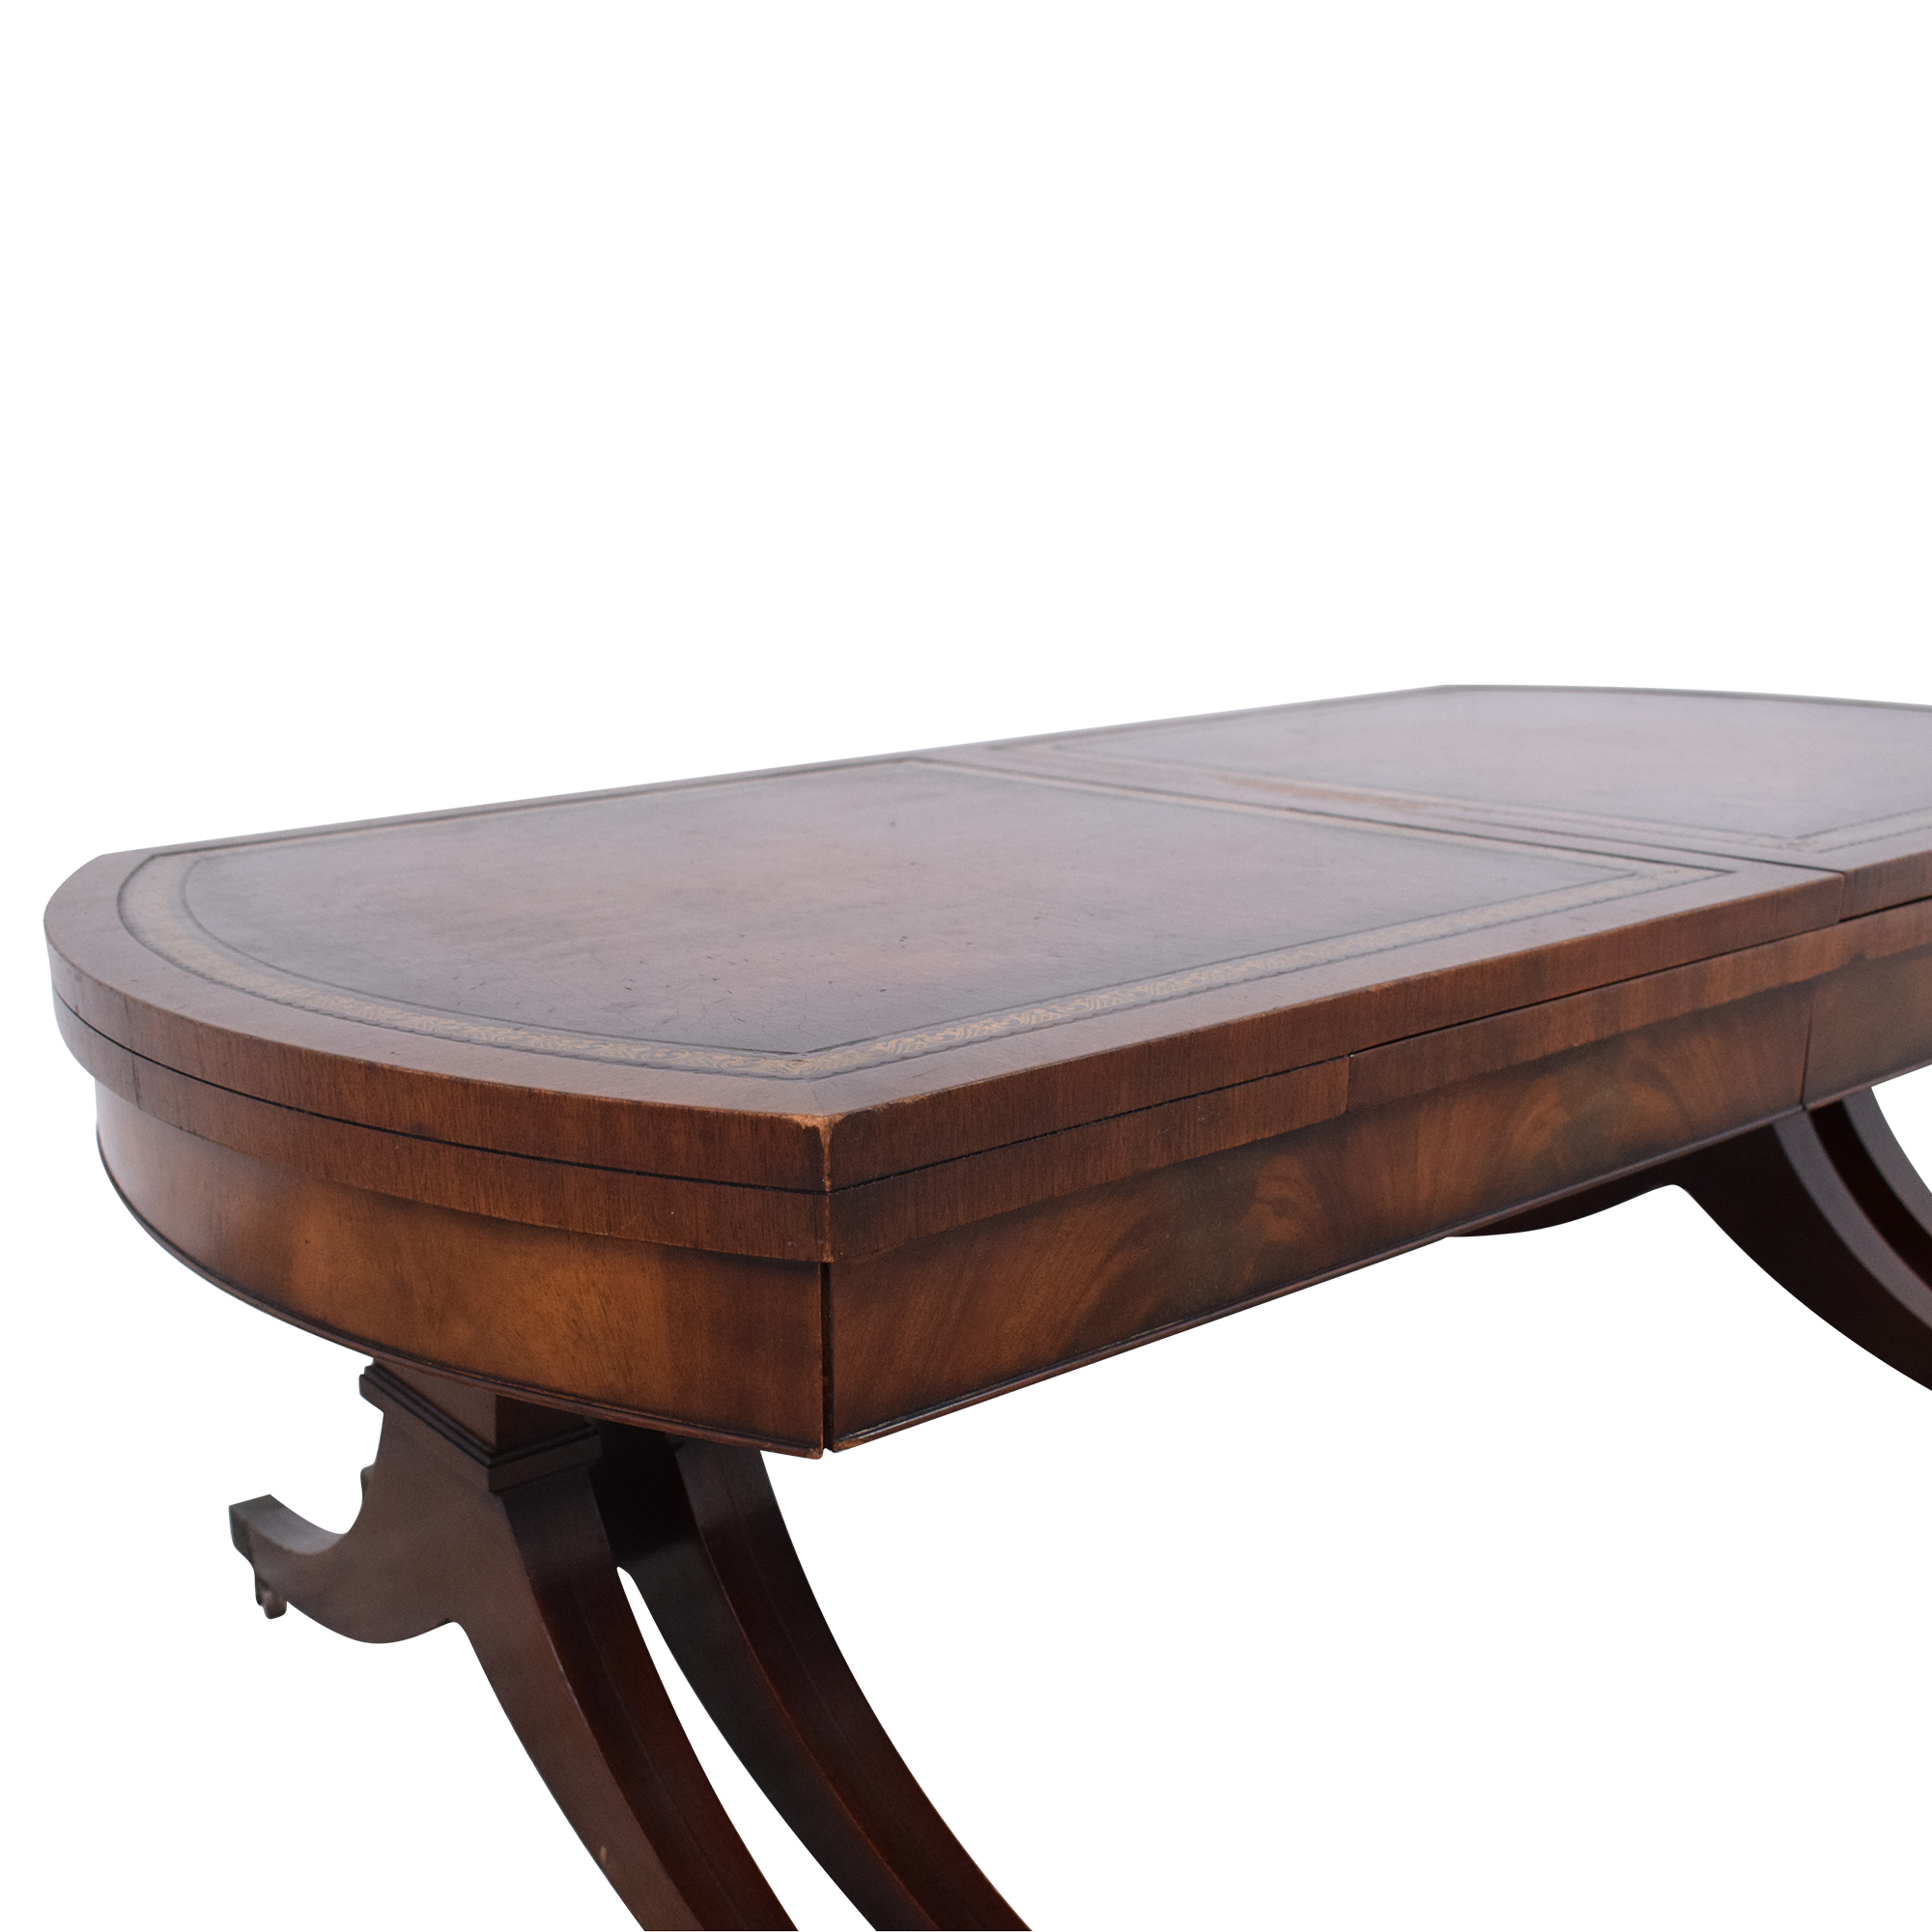 shop  Heirloom Weiman Extendable Coffee Table online